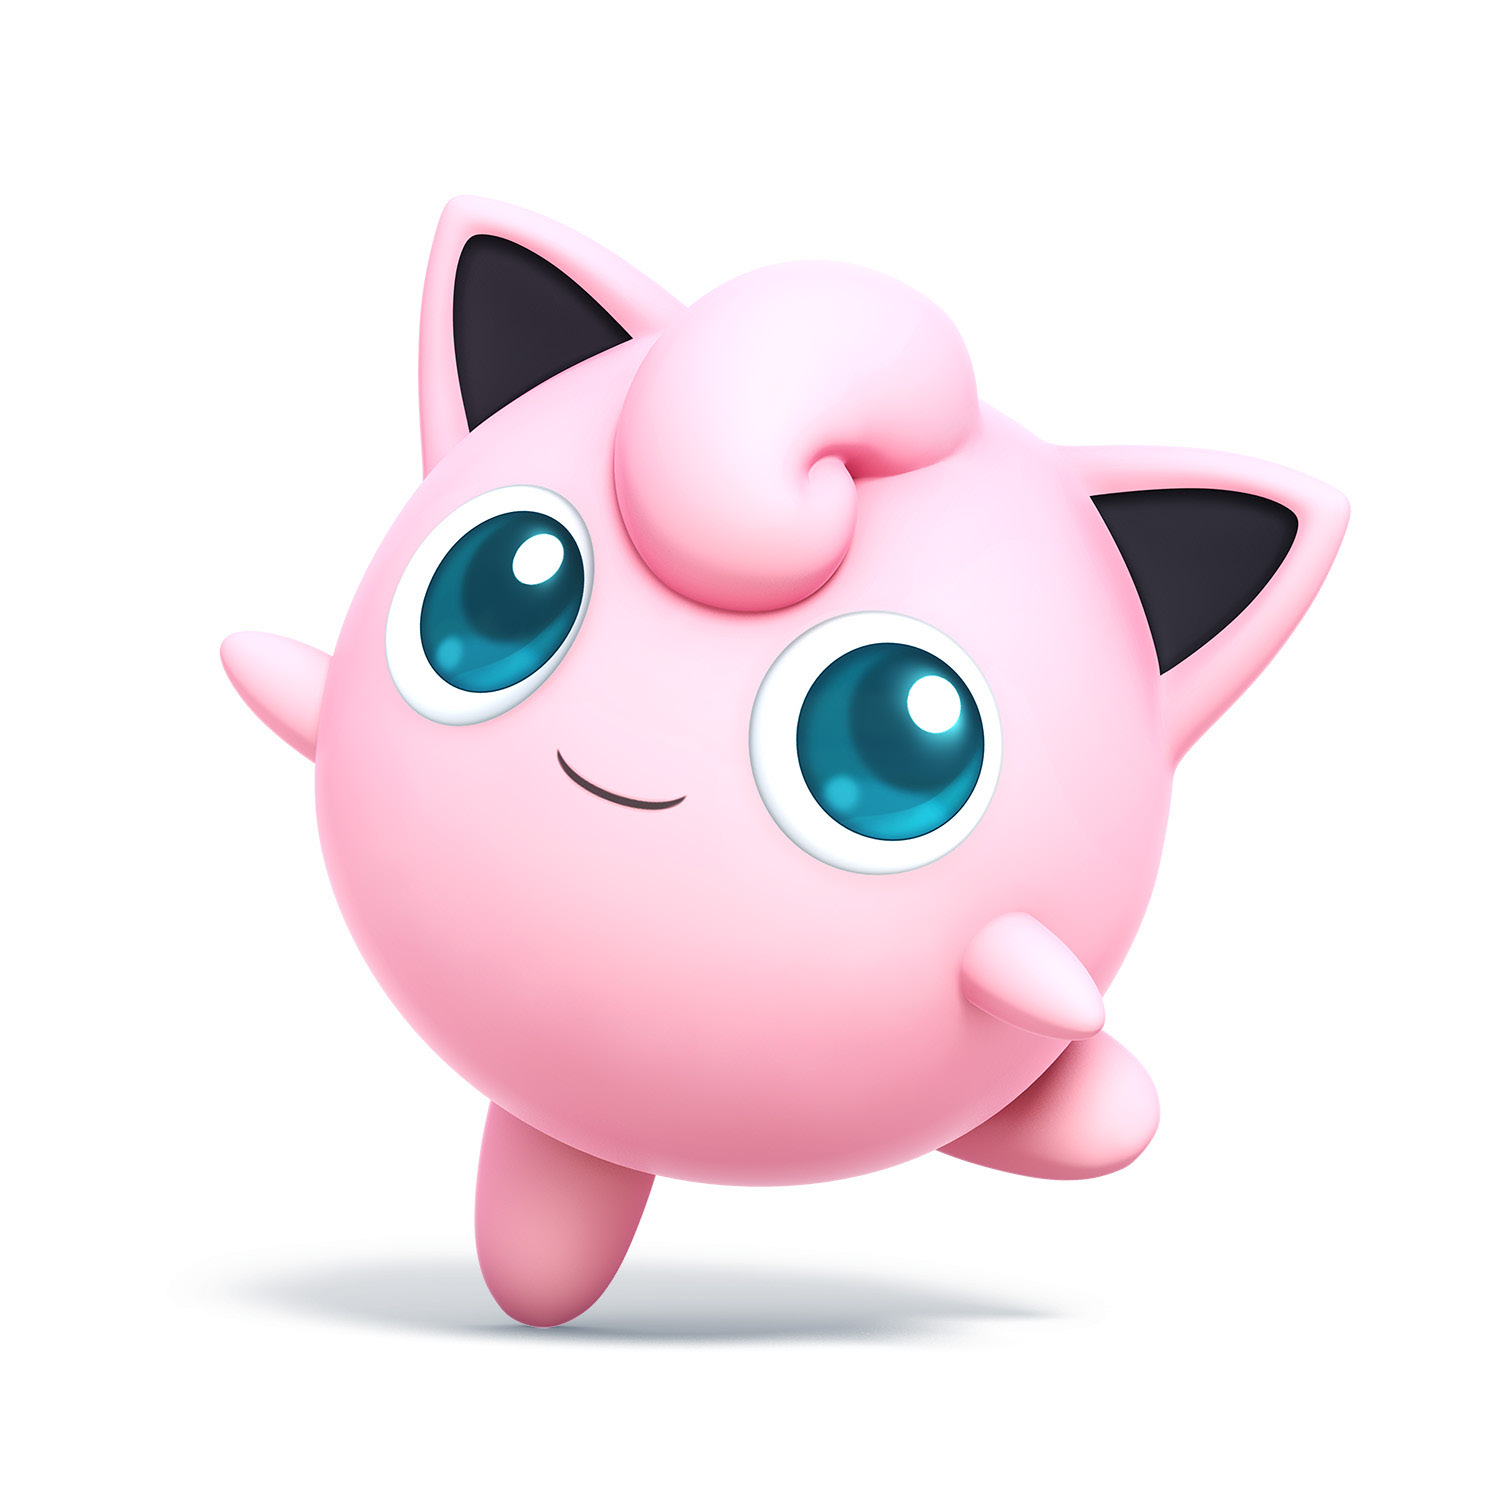 59ba0164 Jigglypuff Artwork | Super Smash Bros 3DS/Wii U | Smash bros wii ...